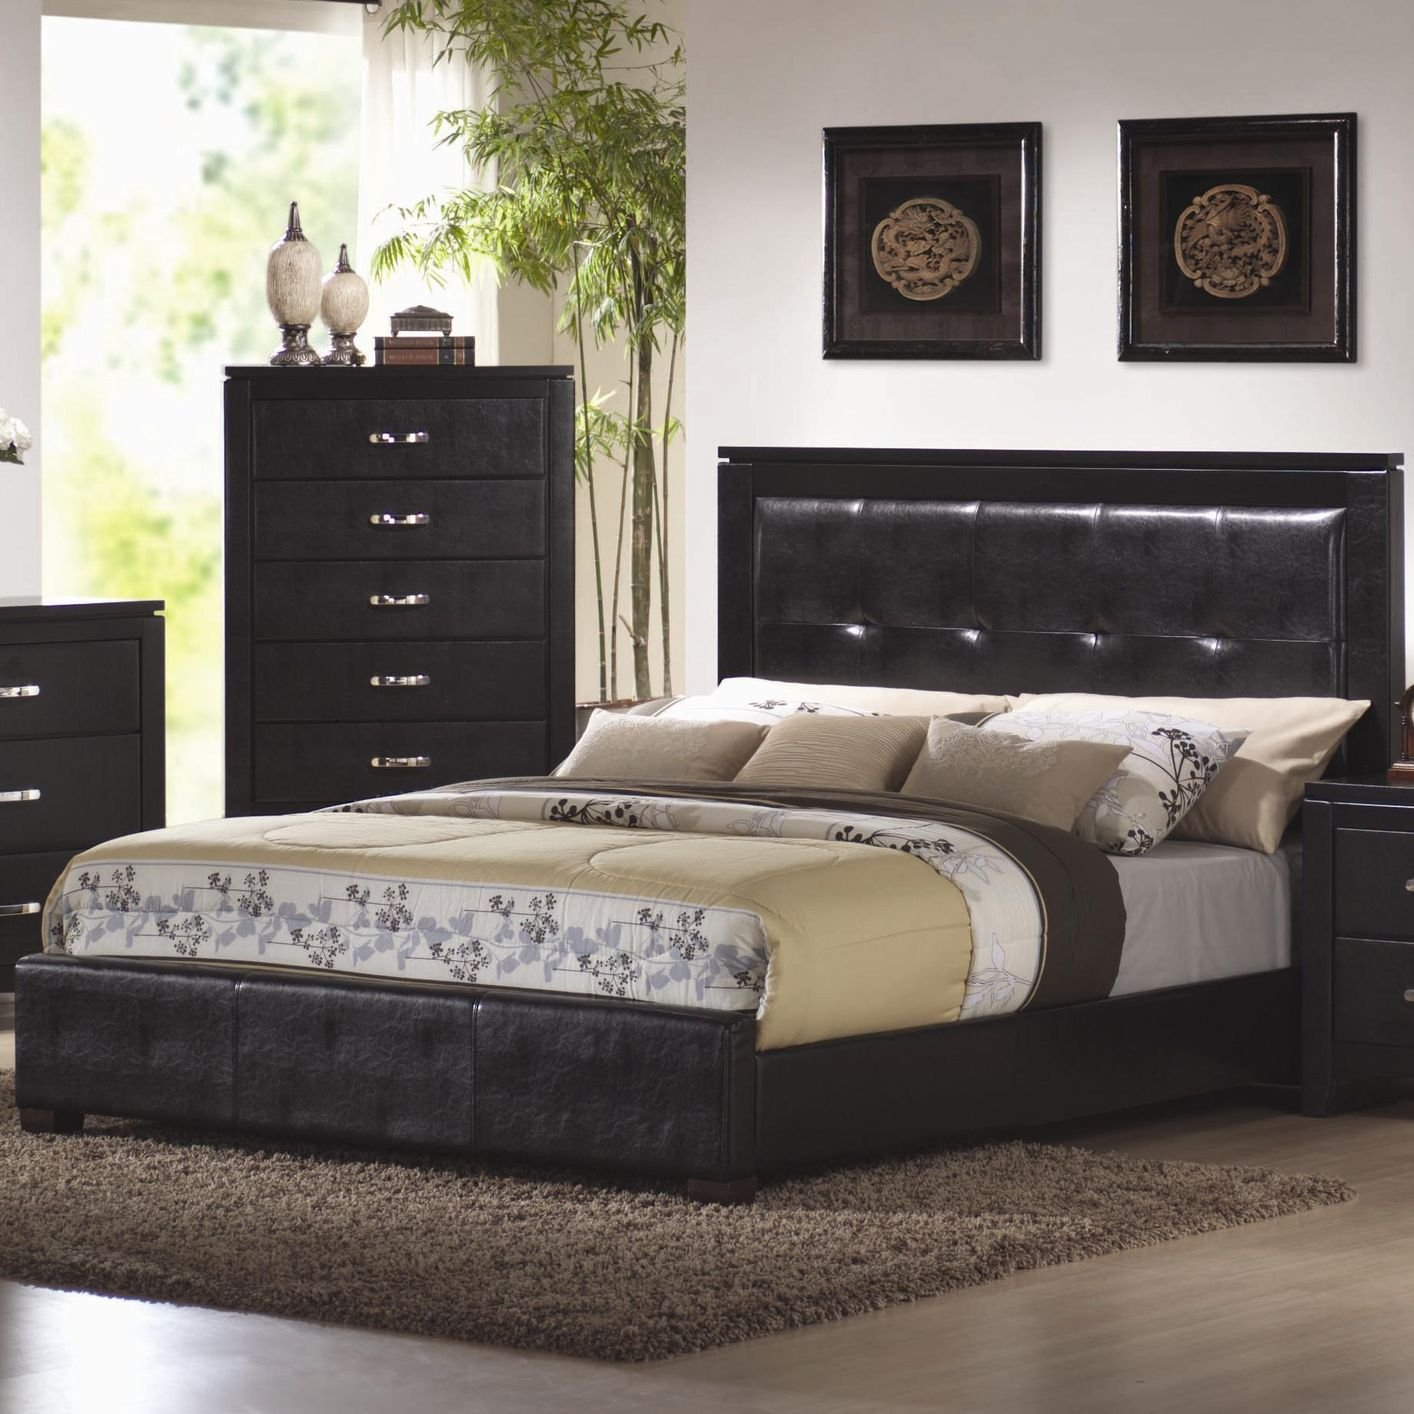 Coaster Kw Black California King Size Leather Bed